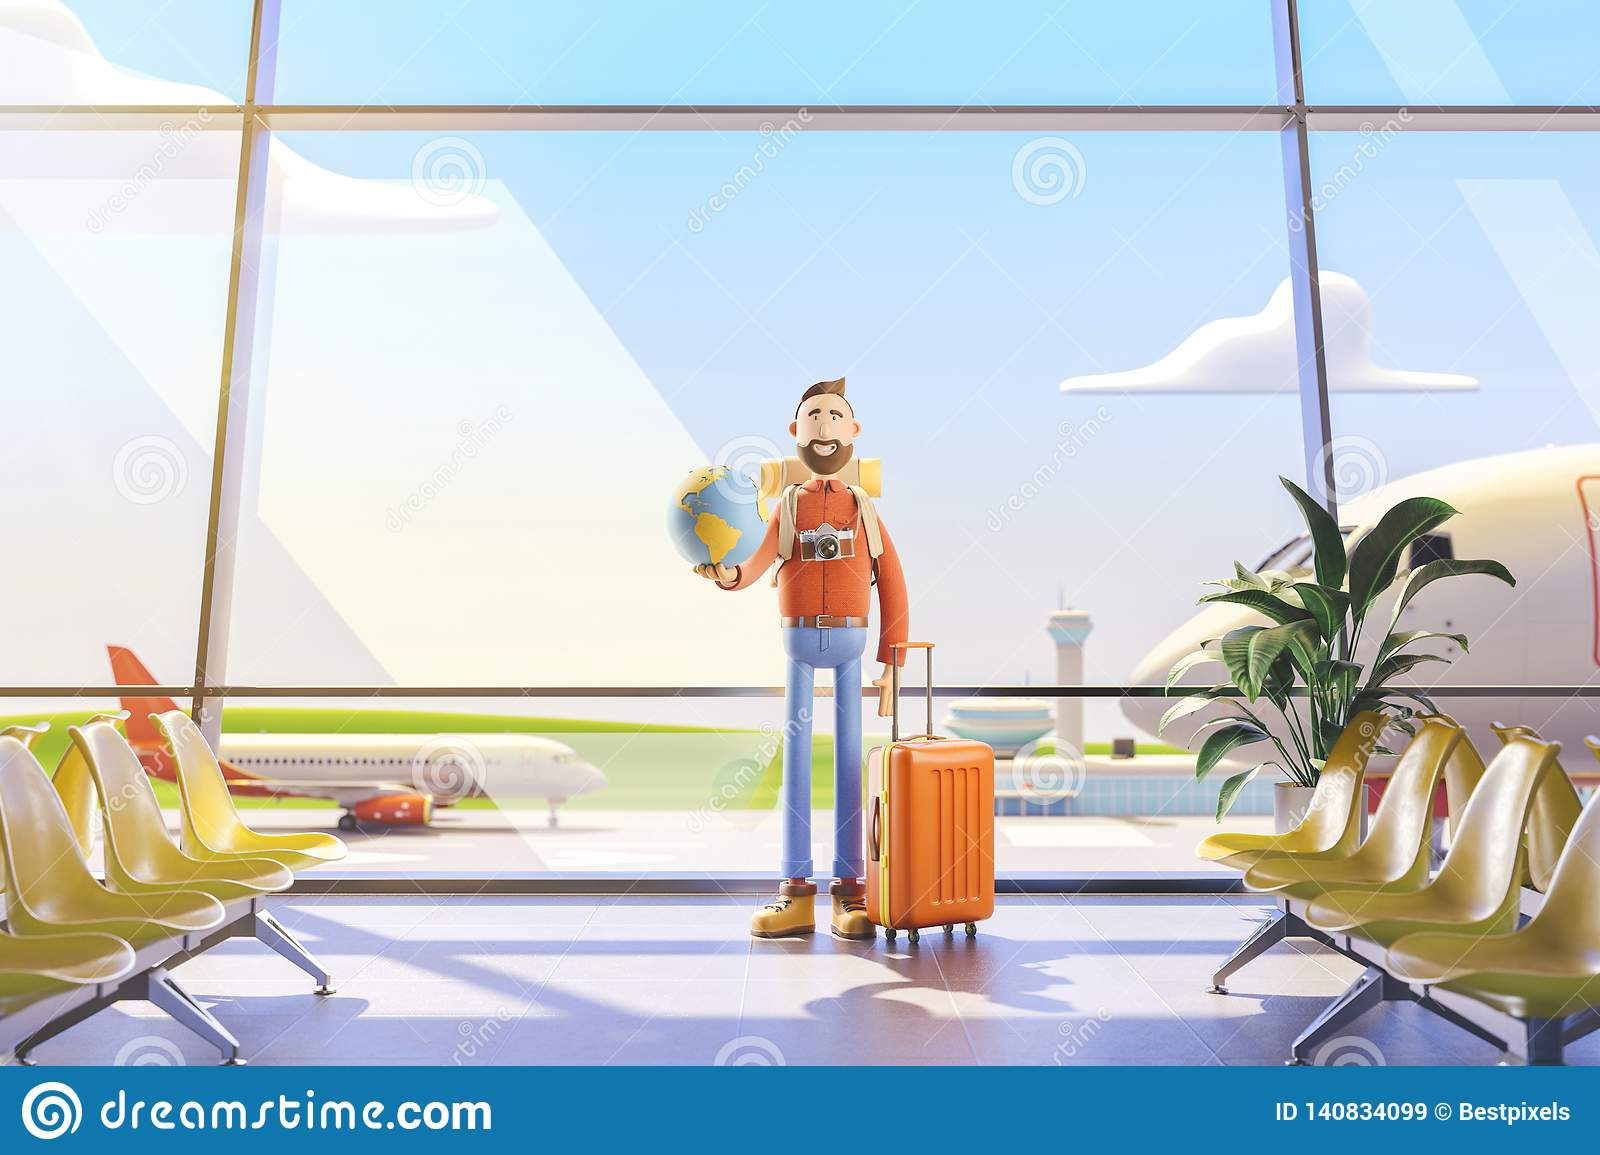 Cartoon character tourist keeps the whole world on the palm in airport. 3d illustration. World travel concept.